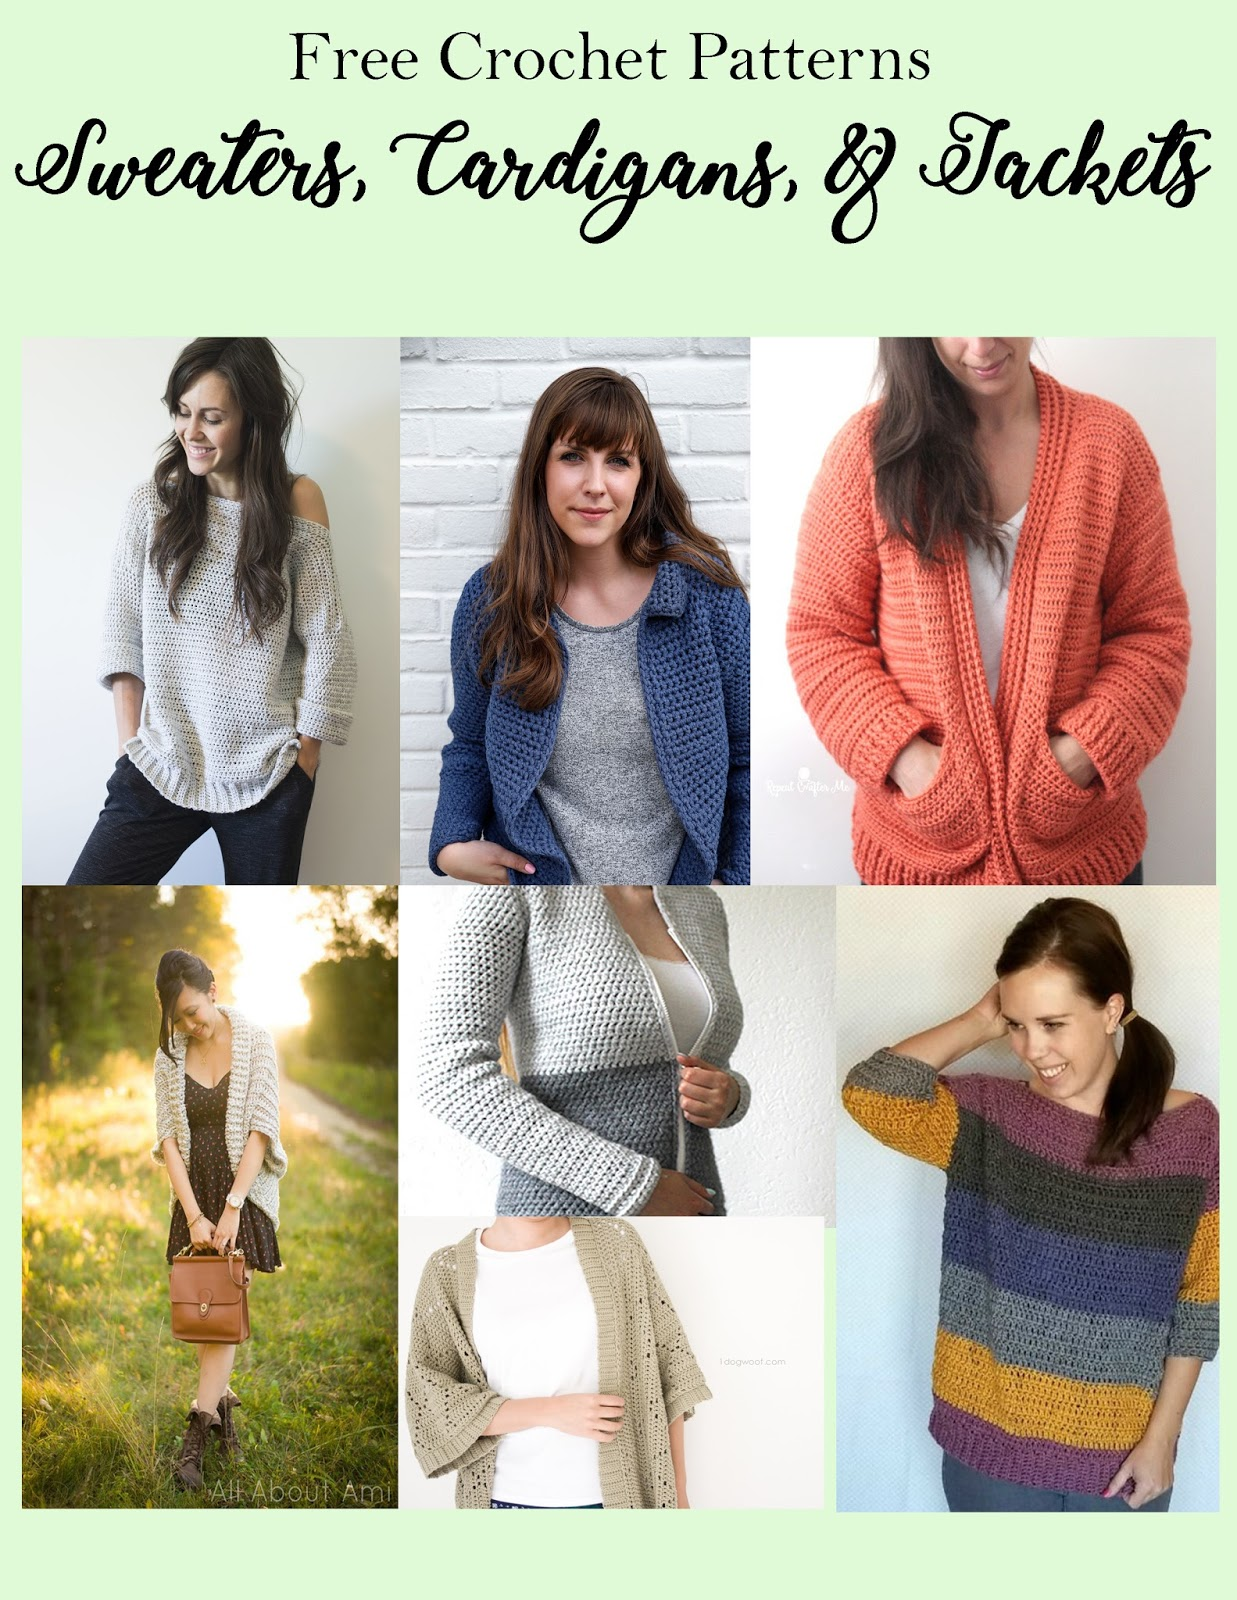 Si Nanay Madel: FREE CROCHET PATTERNS: Sweaters, Cardigans & Jackets